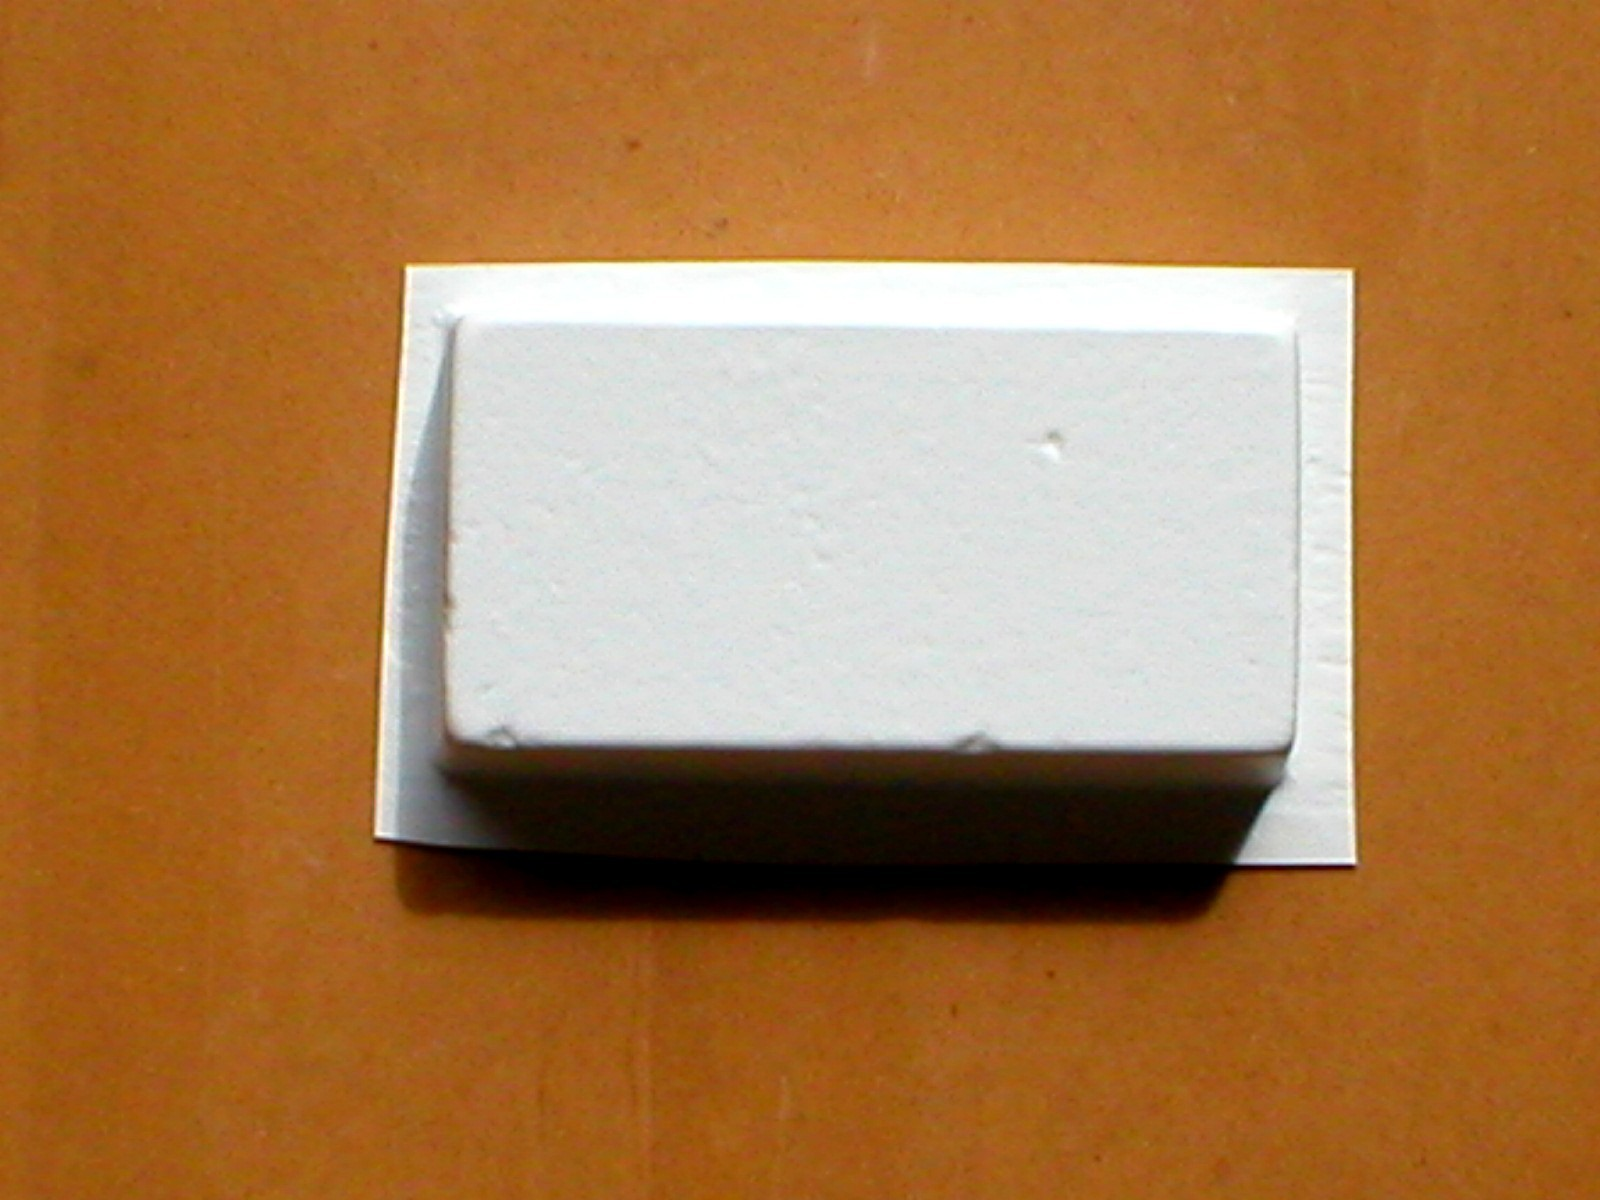 36 MOLD BRICK SUPPLIES KIT - CRAFT 1000s of PATIO PAVER BRICKS FOR PENNIES EACH